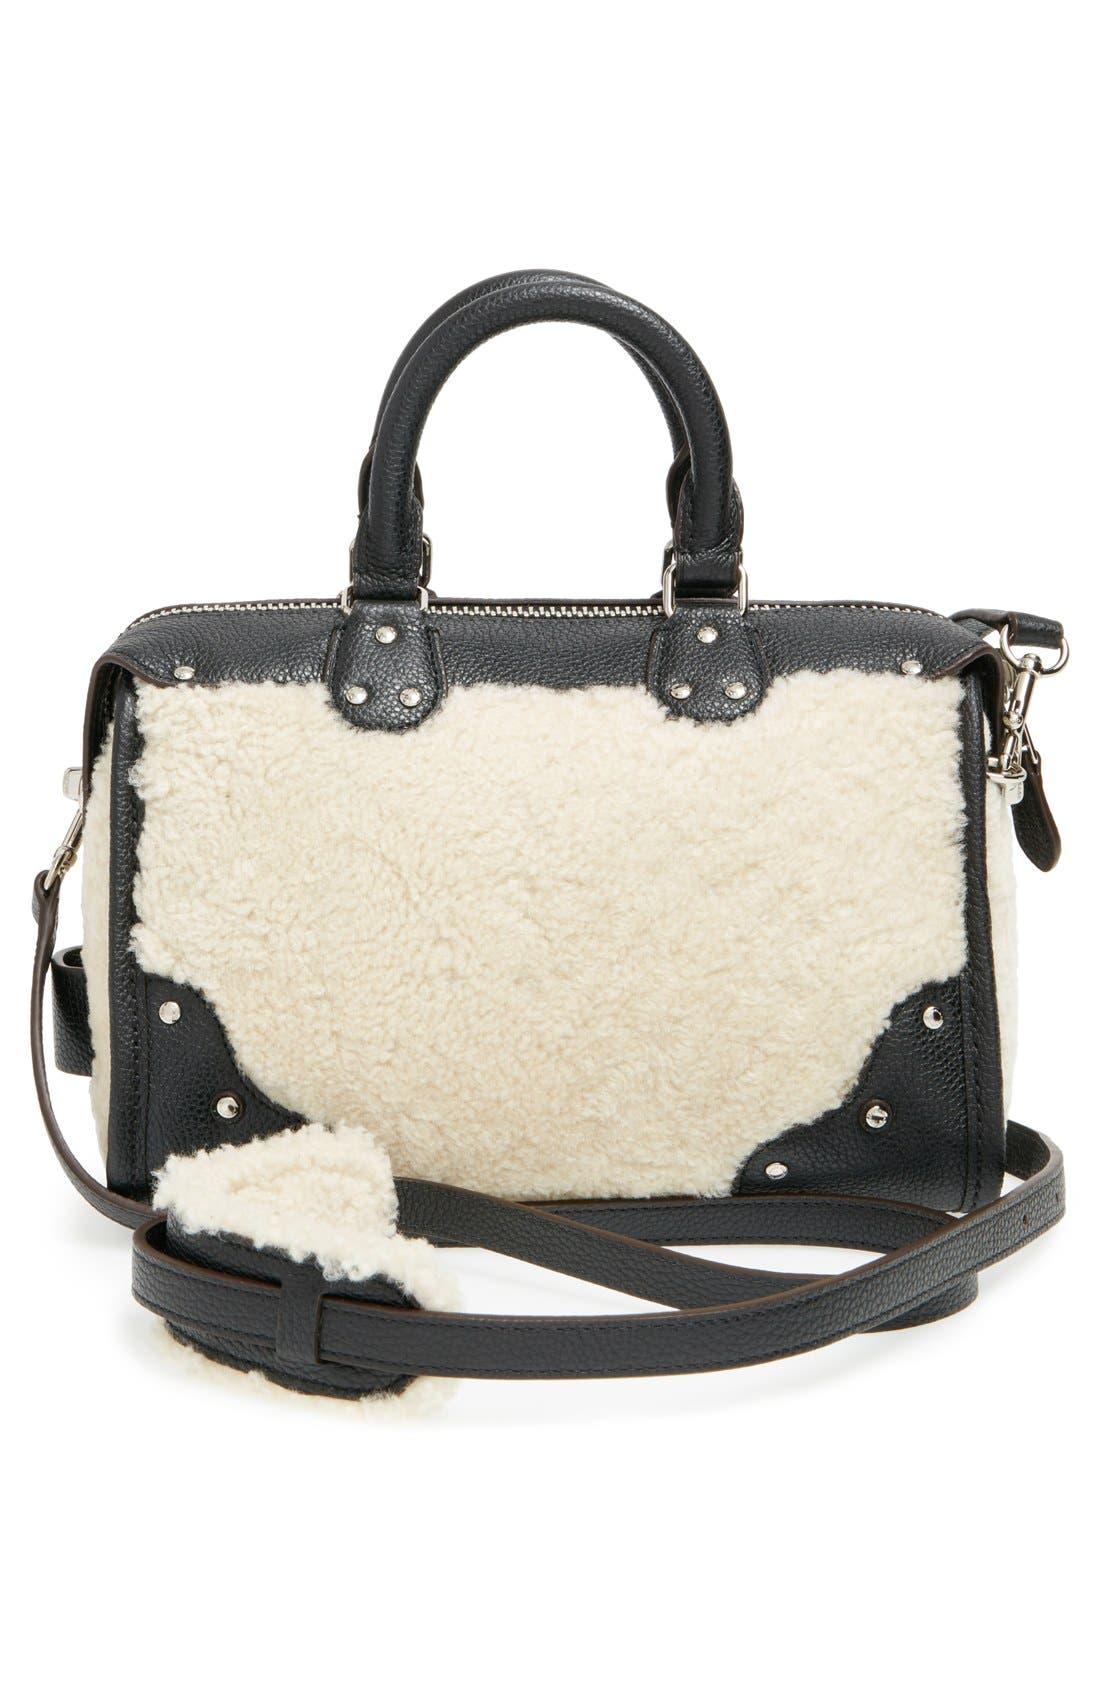 COACH,                             'Rhyder 24' Genuine Shearling & Leather Satchel,                             Alternate thumbnail 5, color,                             900